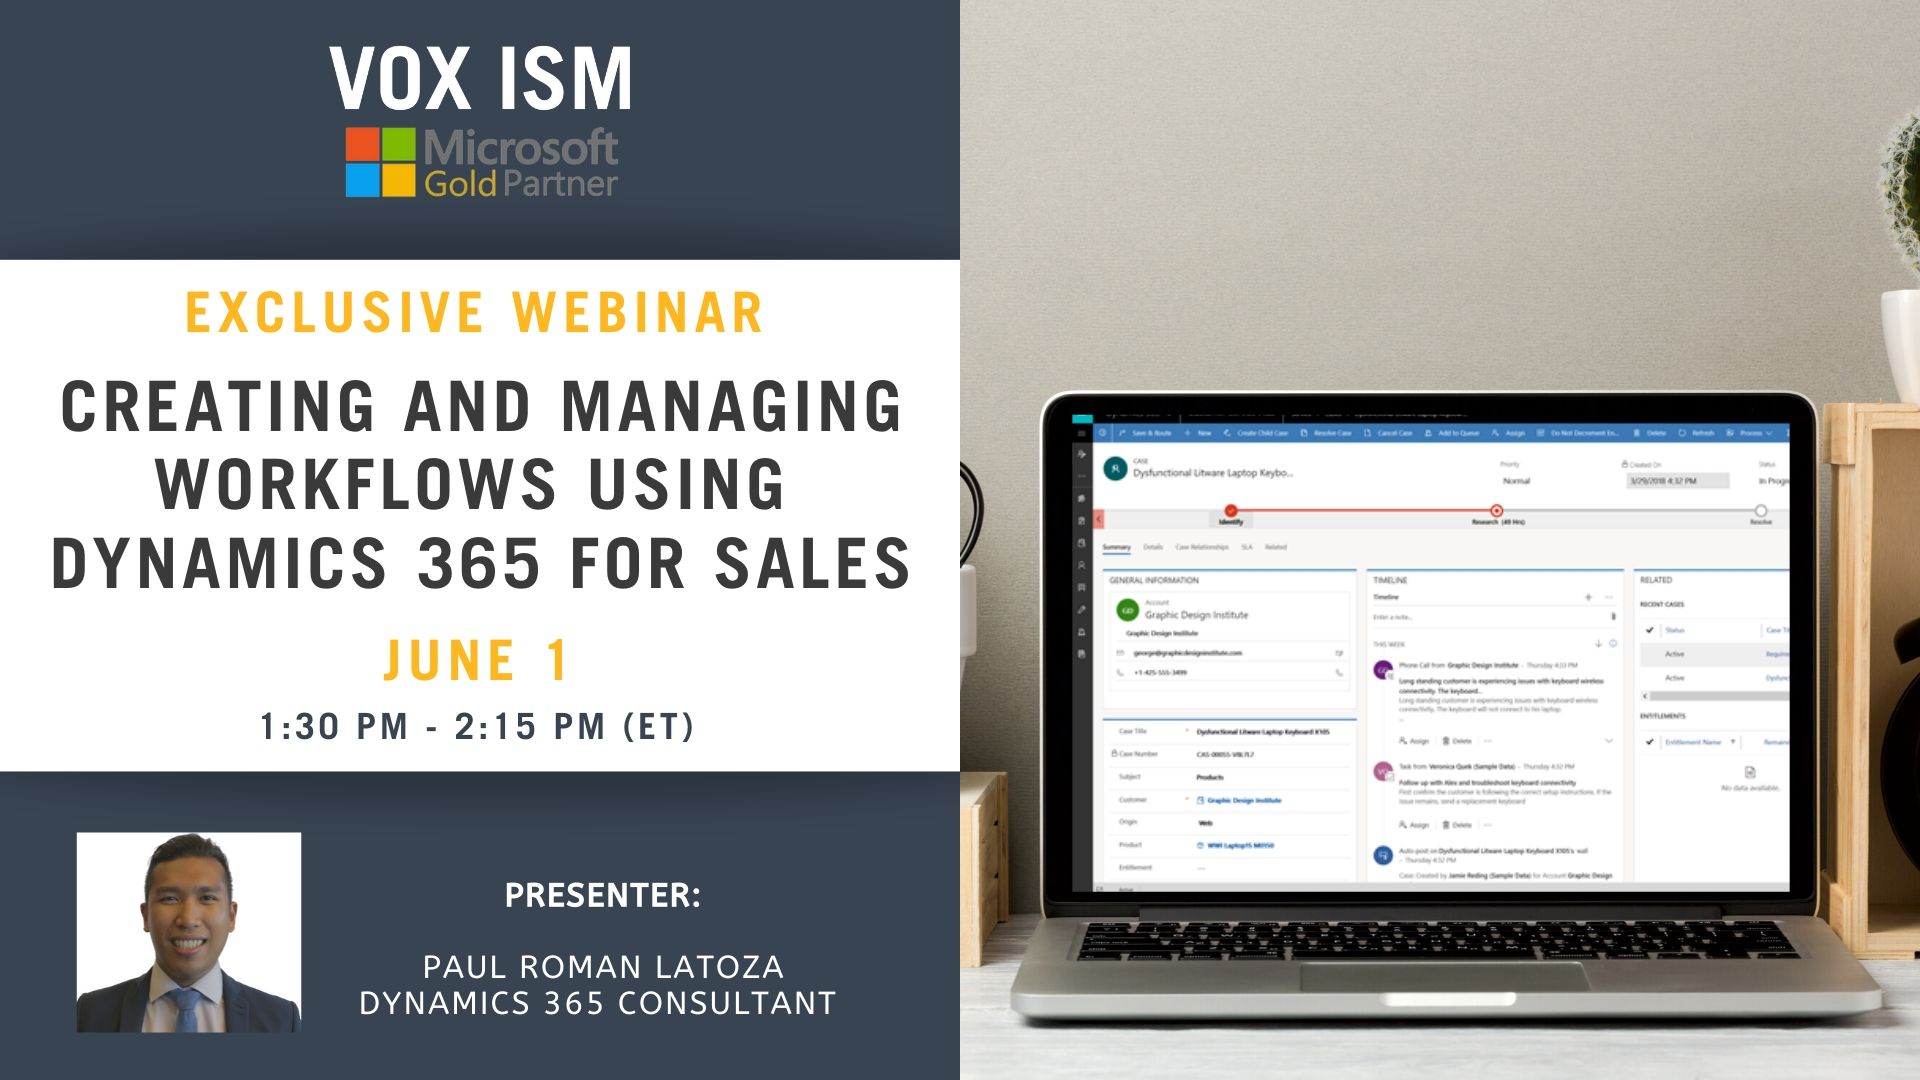 Creating and Managing Workflows using Dynamics 365 for Sales - June 1 - Webinar VOX ISM